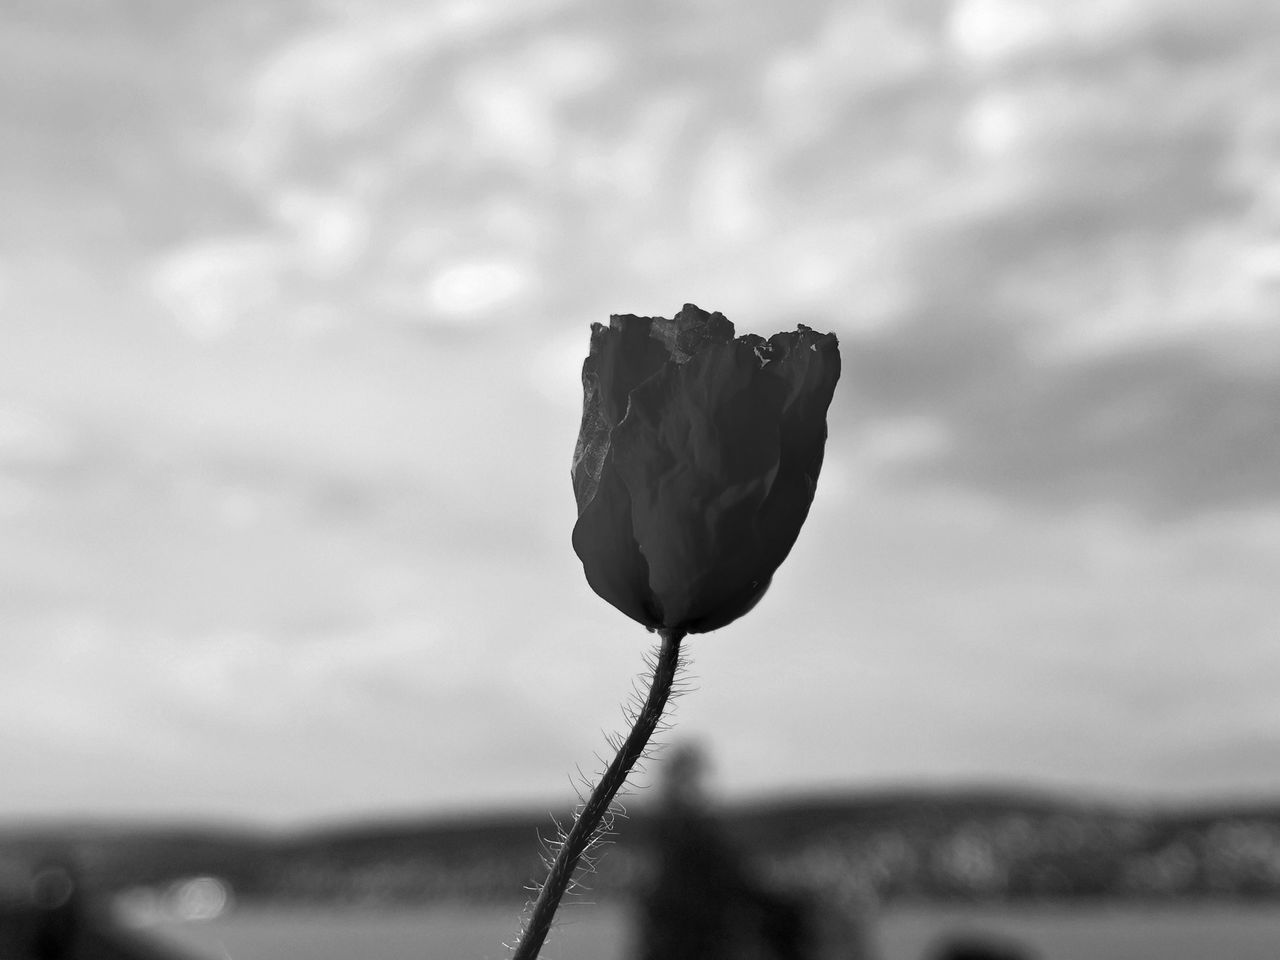 Balcony Balcony View Beauty In Nature Black & White Blackandwhite Blooming Close-up Flower Flower Head Focus On Foreground Fragility Freshness Growth Monochrome Monochrome Photography Nature Outdoors Petal Plant Poppy Flowers Spring Spring Flowers Springtime Summer Summertime